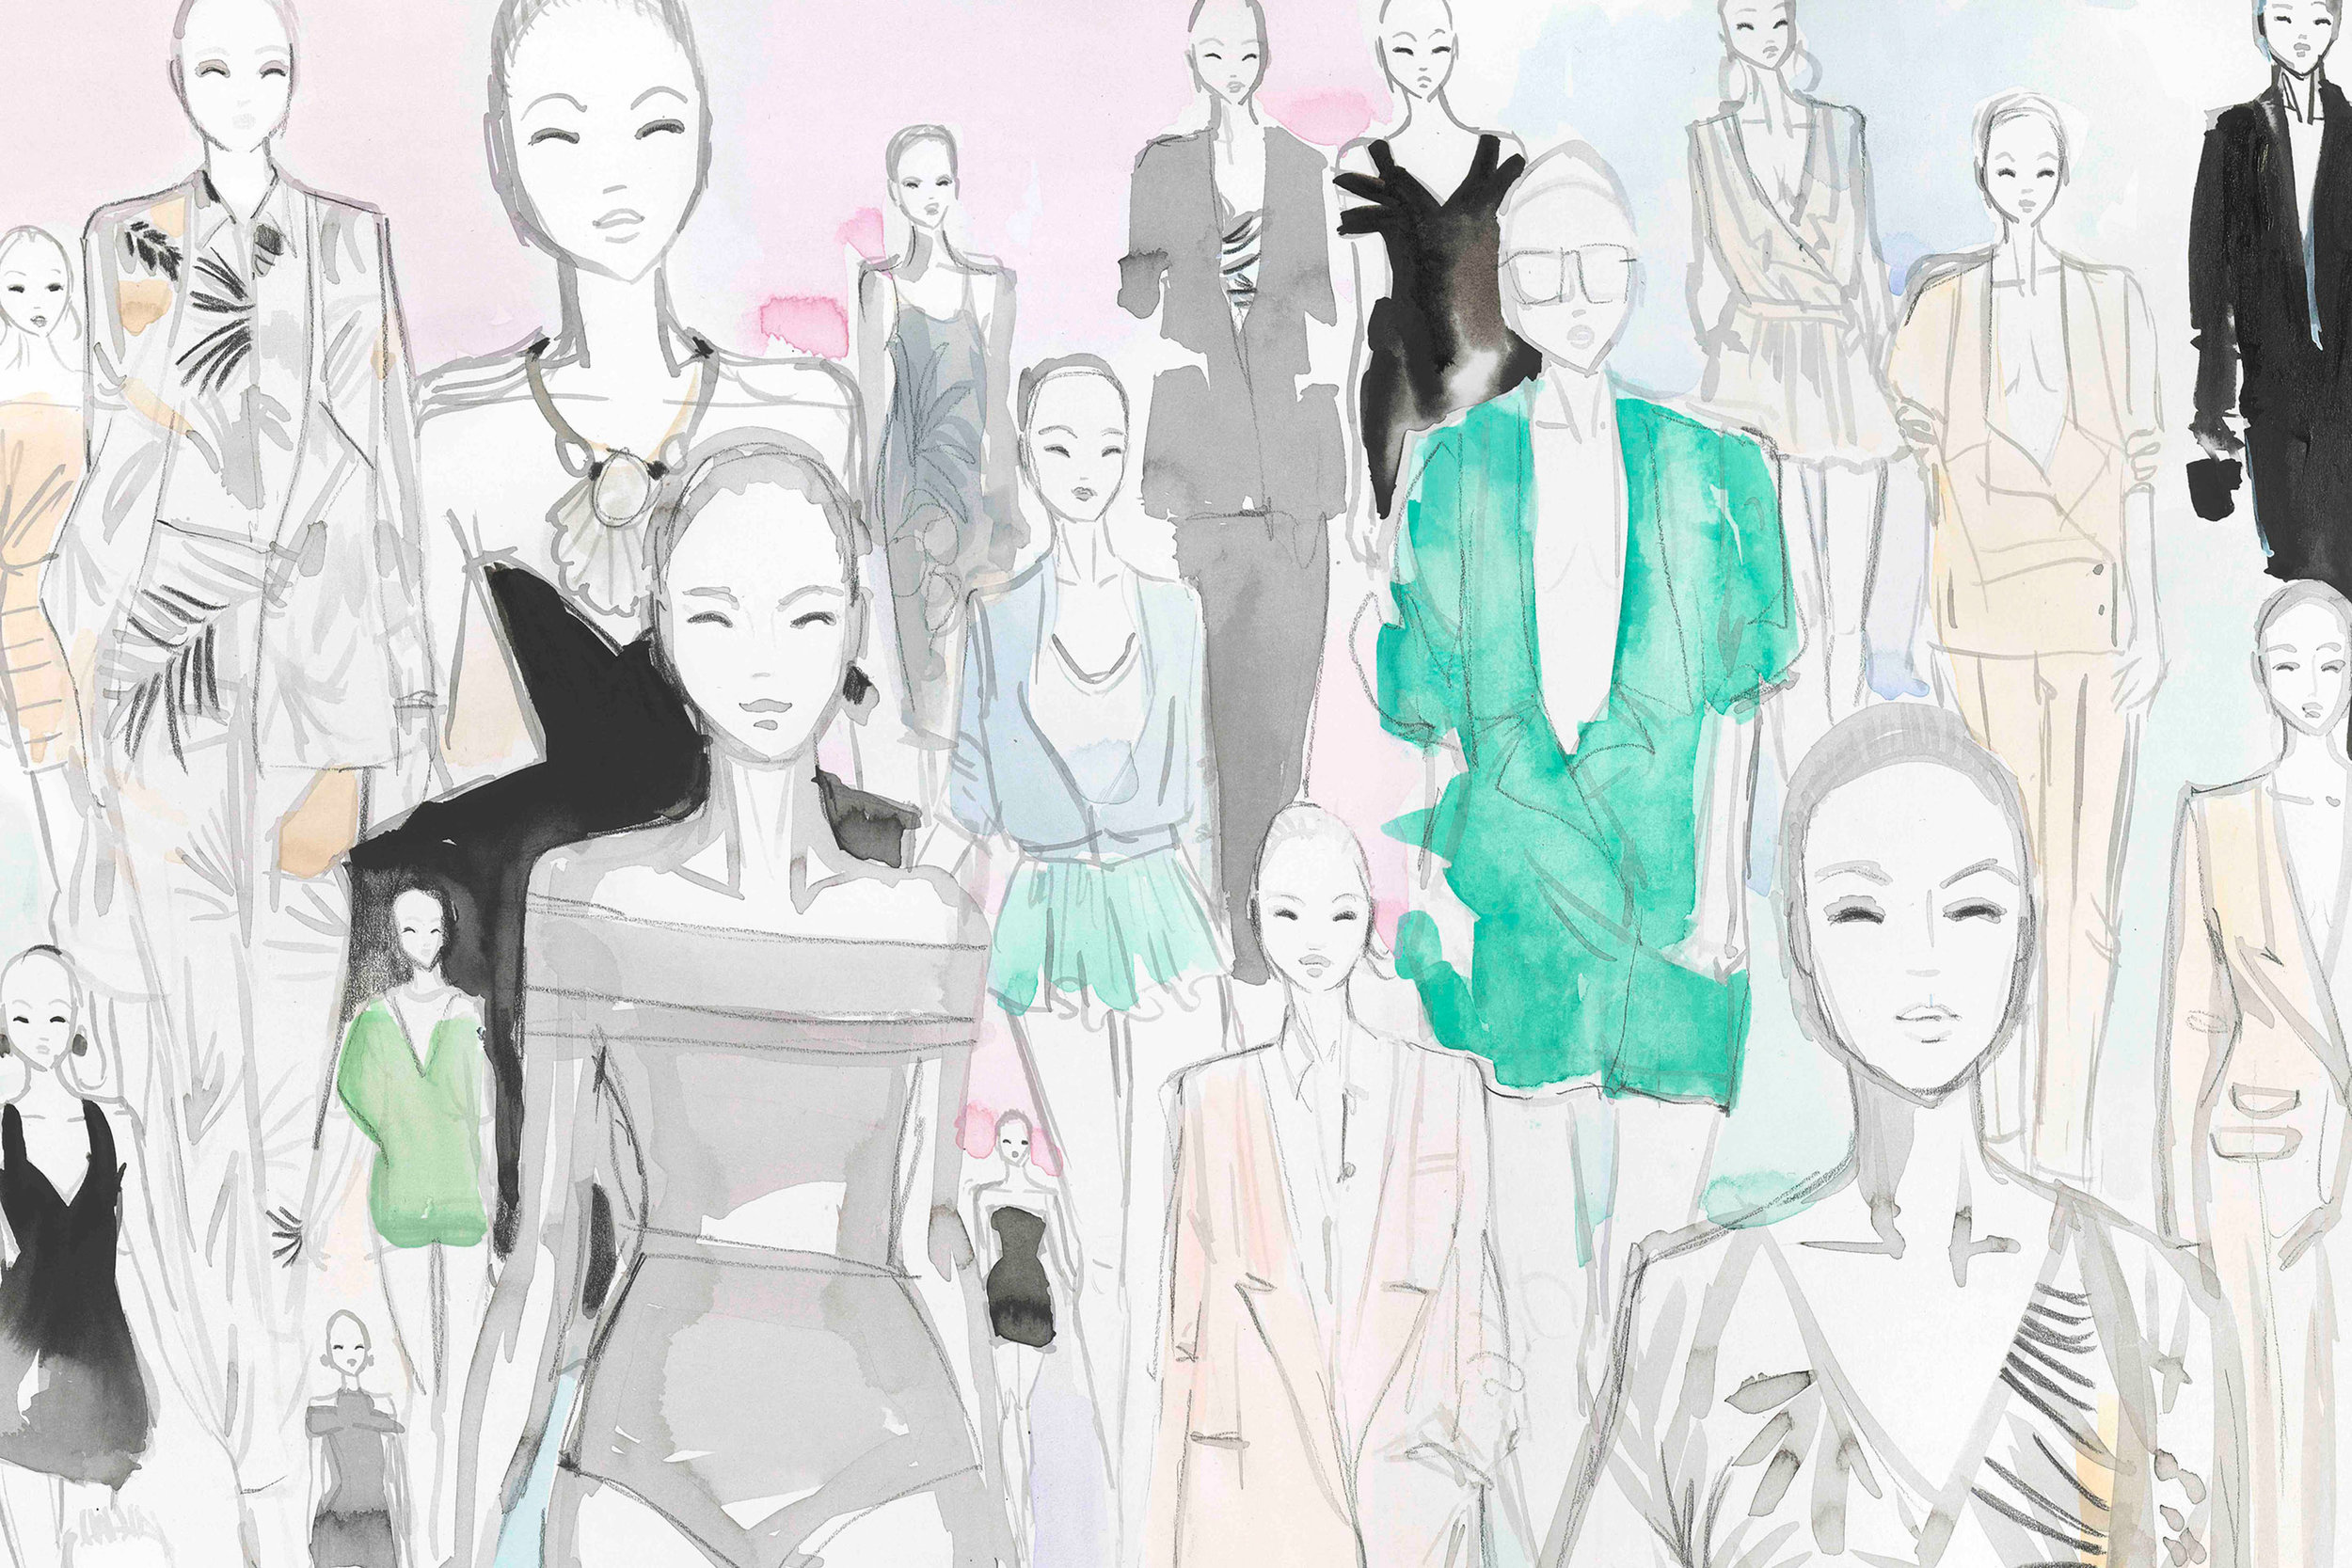 Section of Stella McCartney SS09 catwalk painting